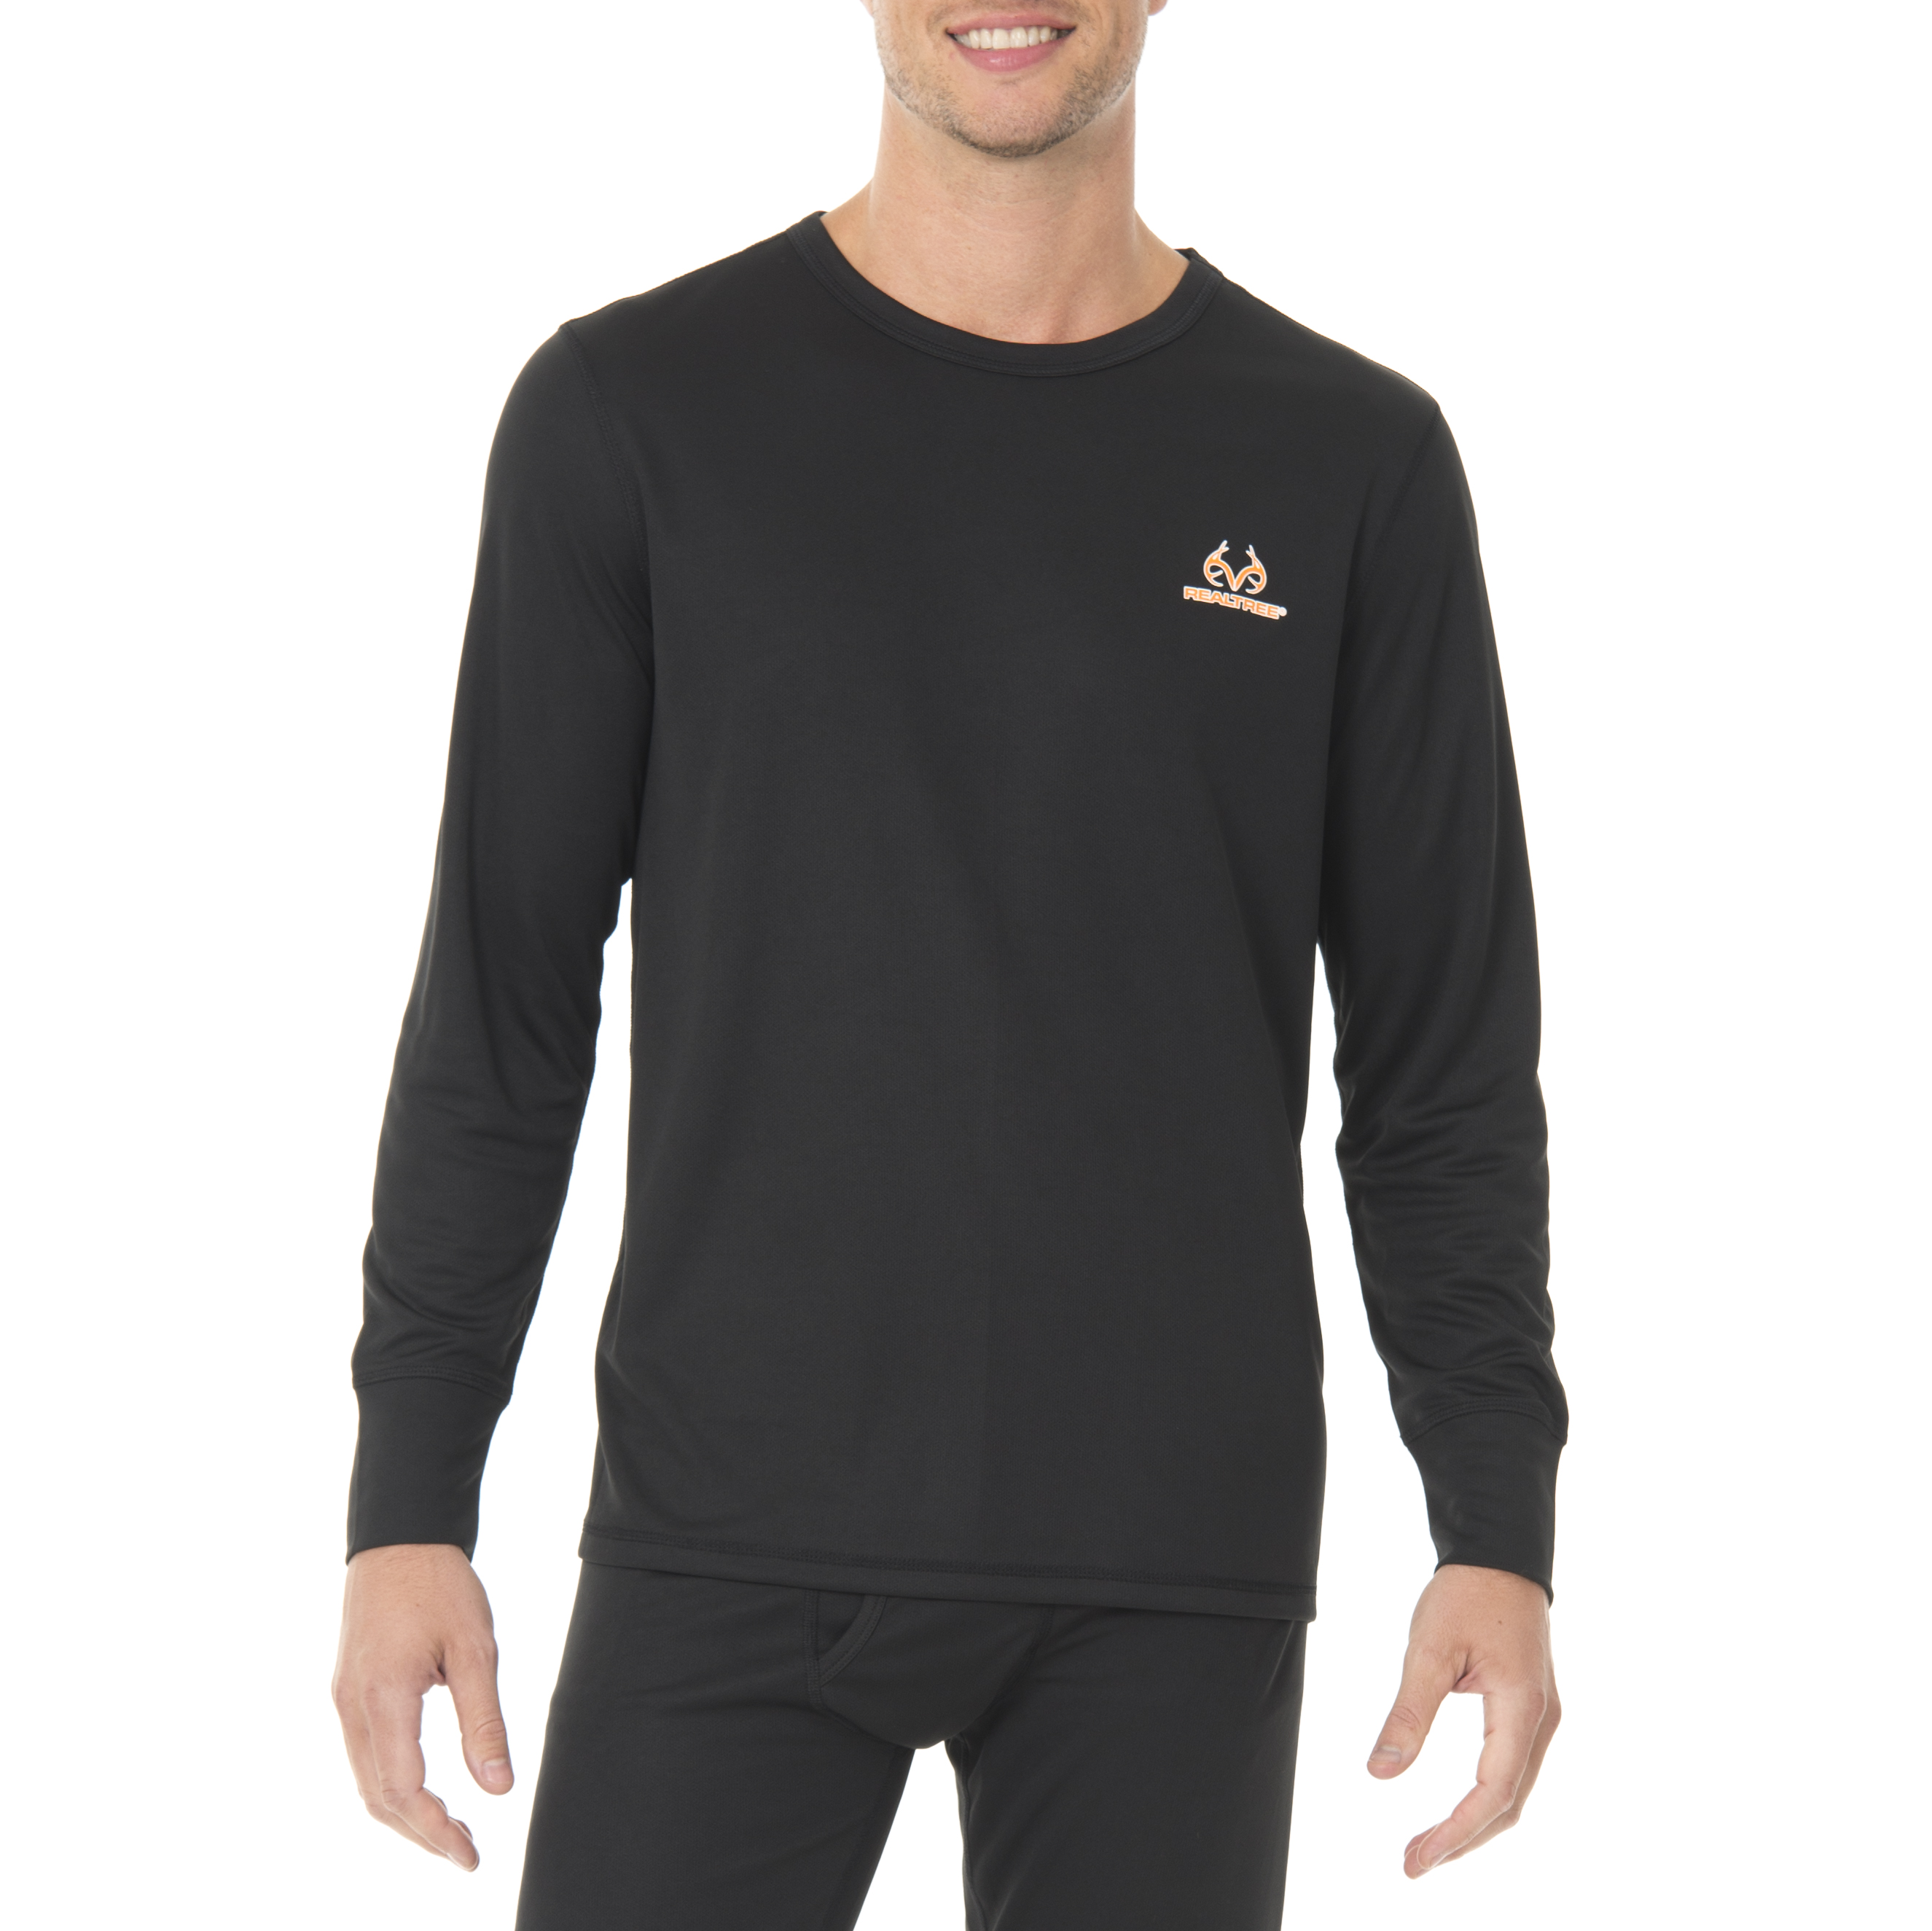 Men's Performance Baselayer Thermal Top by IVORY DIV OF INTRADECO